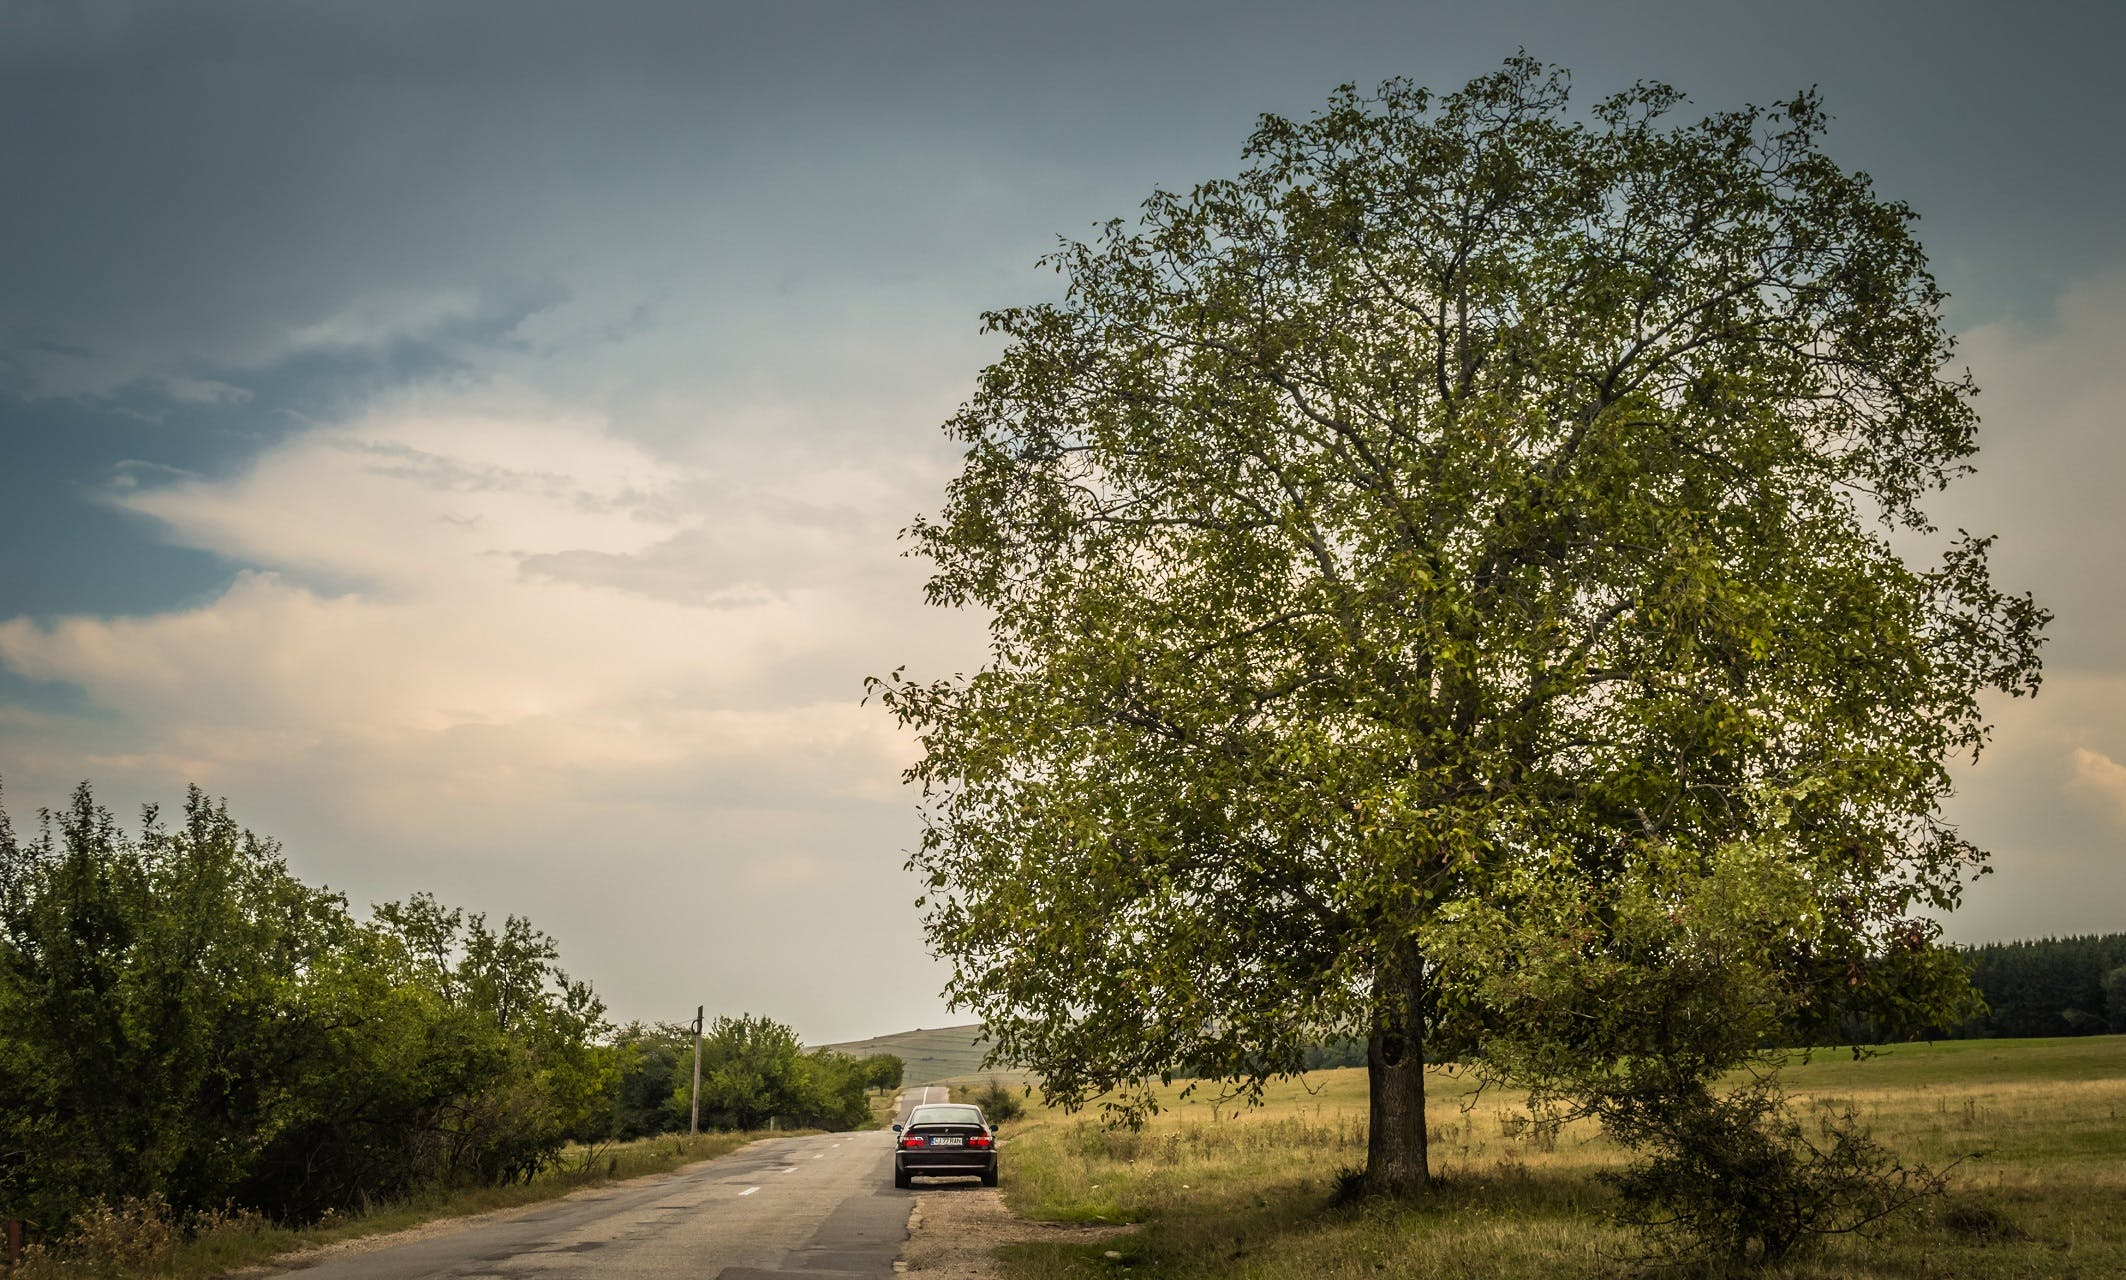 Free stock photo of road, landscape, clouds, car